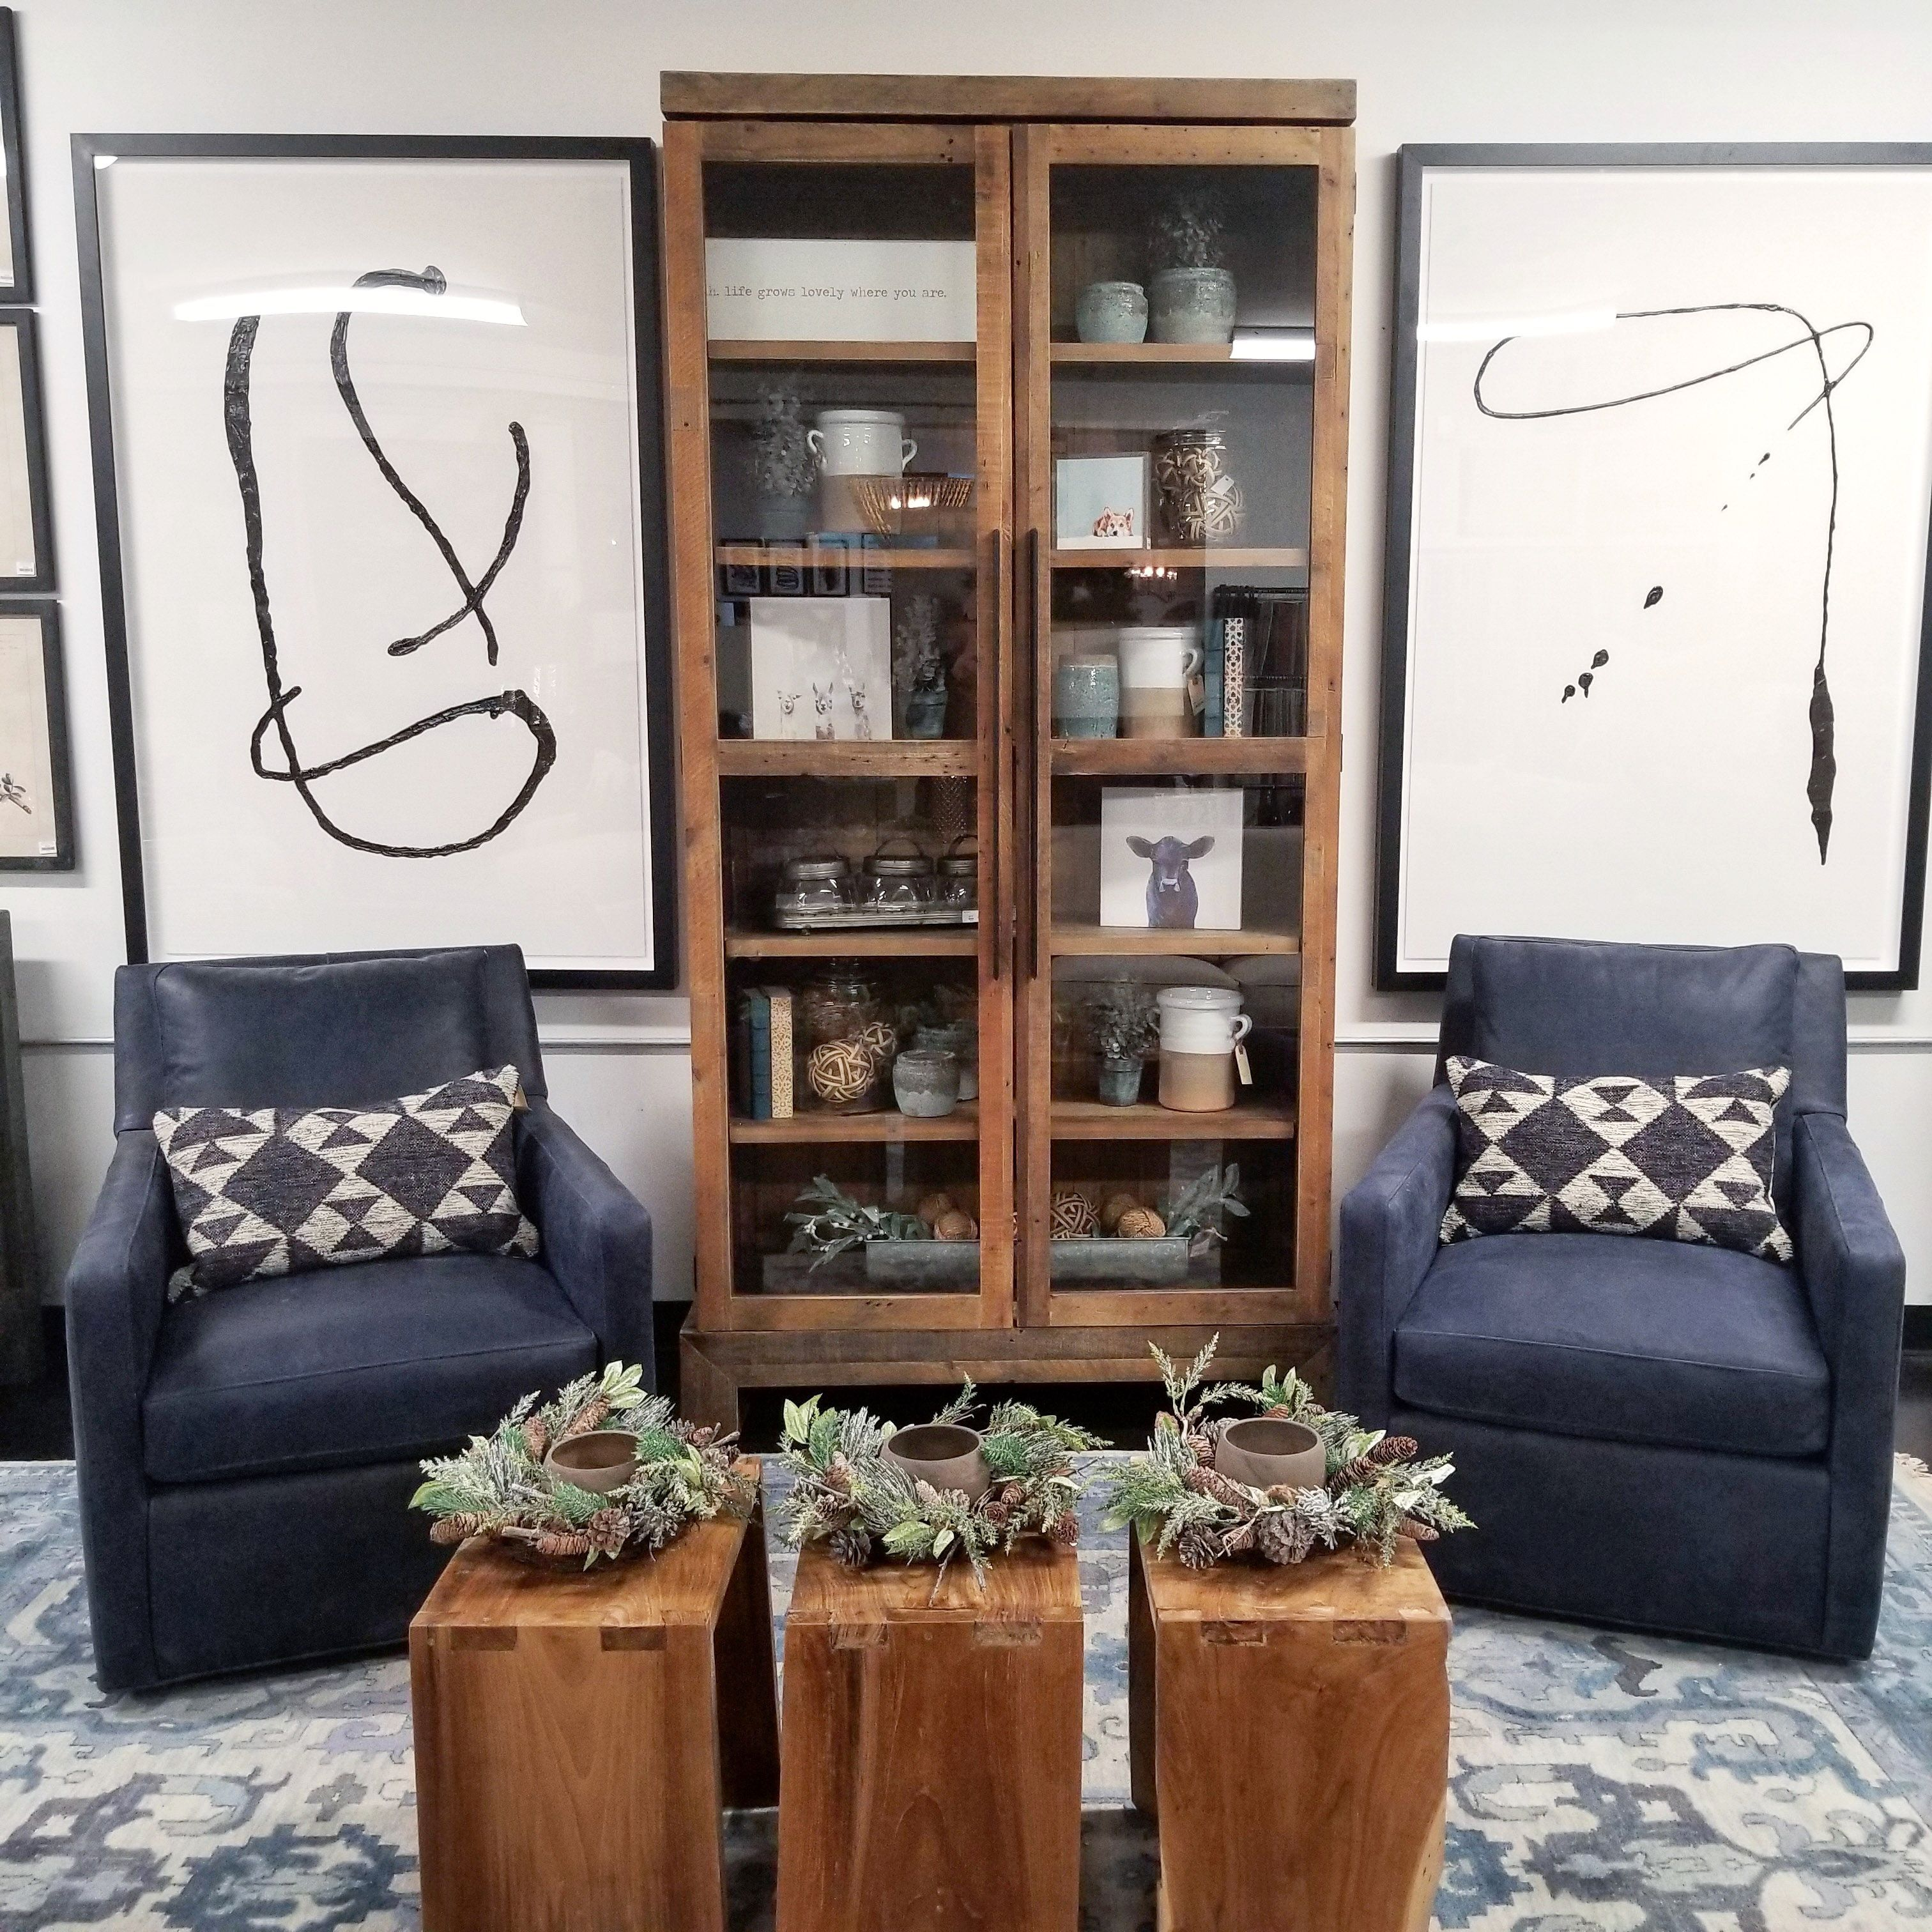 Rustic Meets Modern In This Cozy Living Room Setting The Jaxon Swivel Chairs Are Wrapped I Swivel Chair Living Room Cozy Living Rooms Mid Century Office Chair